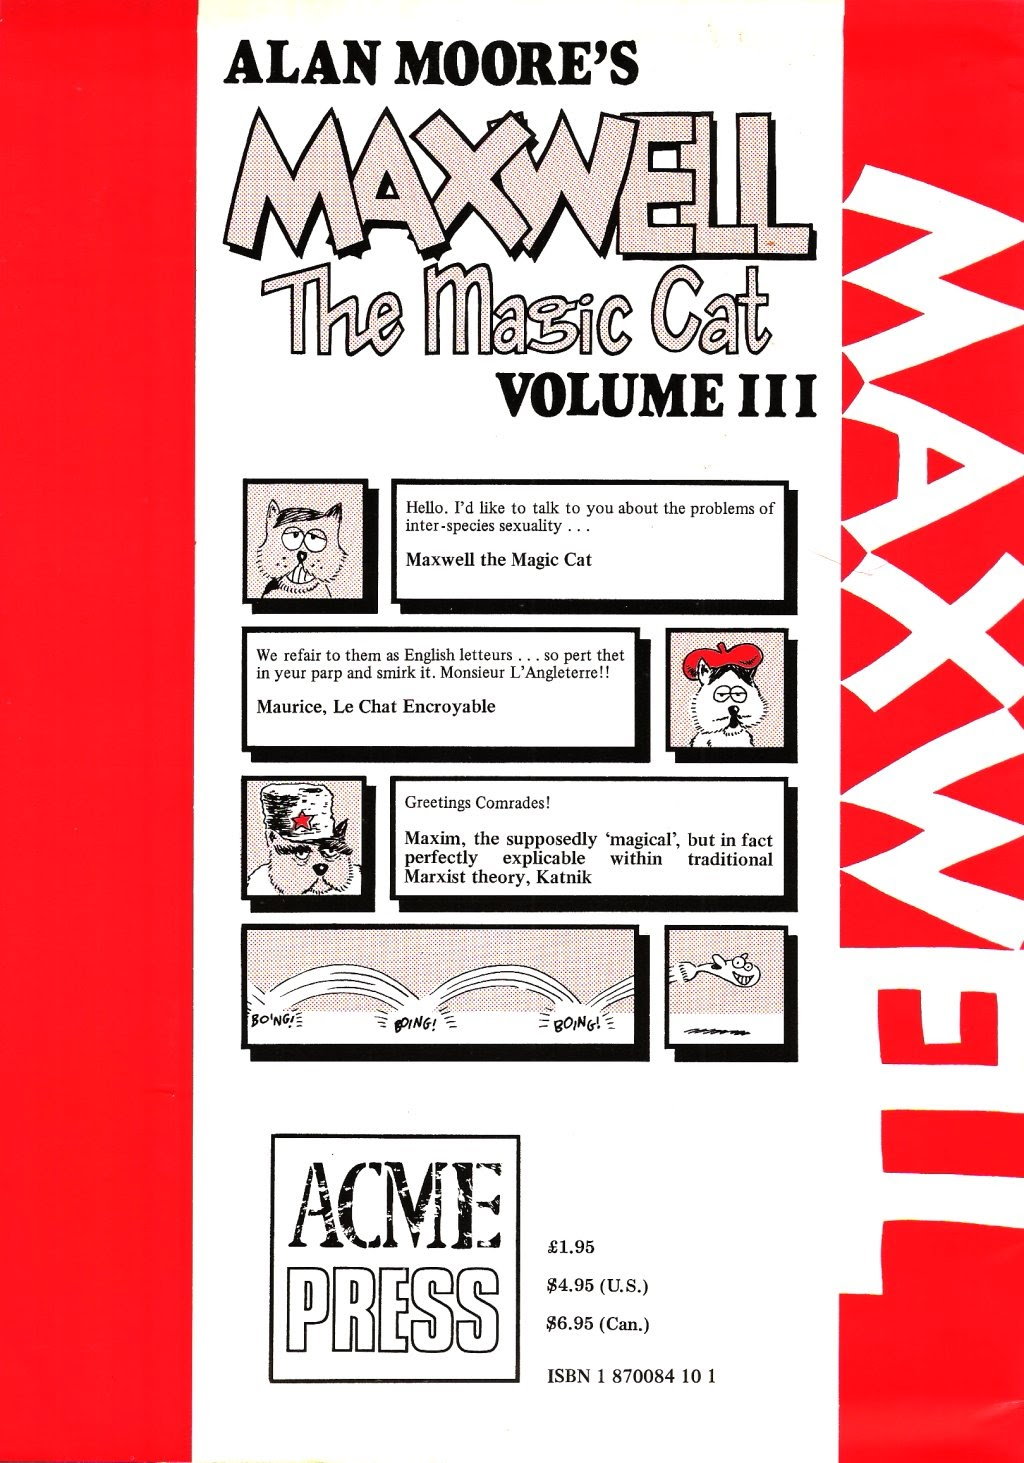 Read online Alan Moore's Maxwell the Magic Cat comic -  Issue #3 - 35